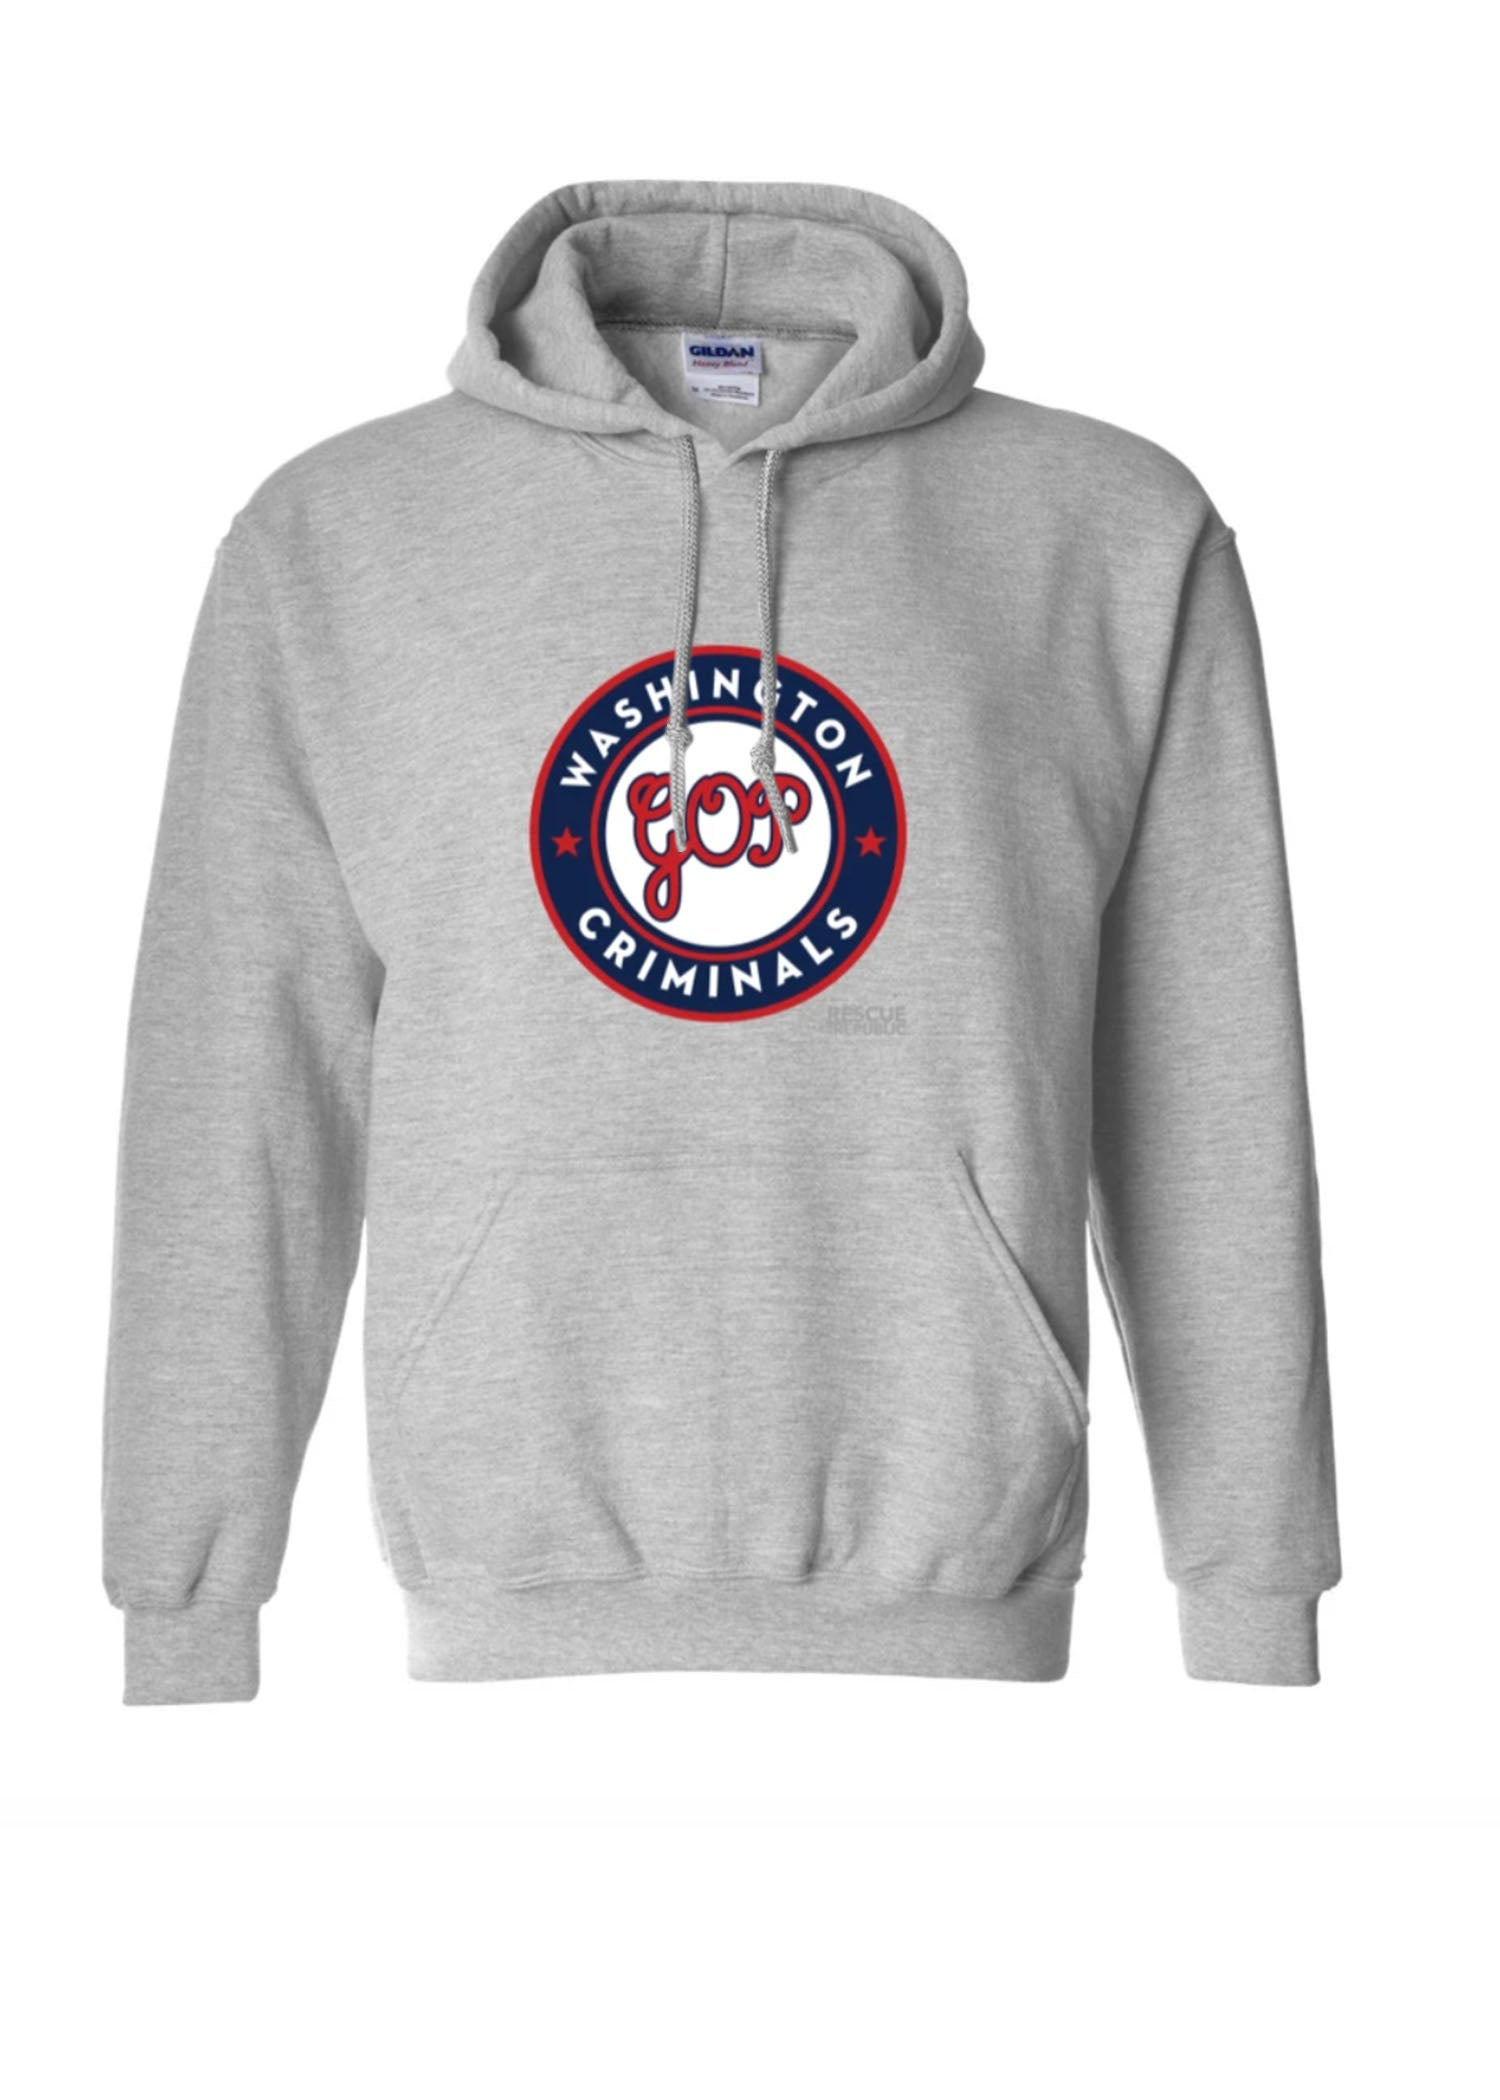 Washington GOP Criminals Hoodie Sweatshirt